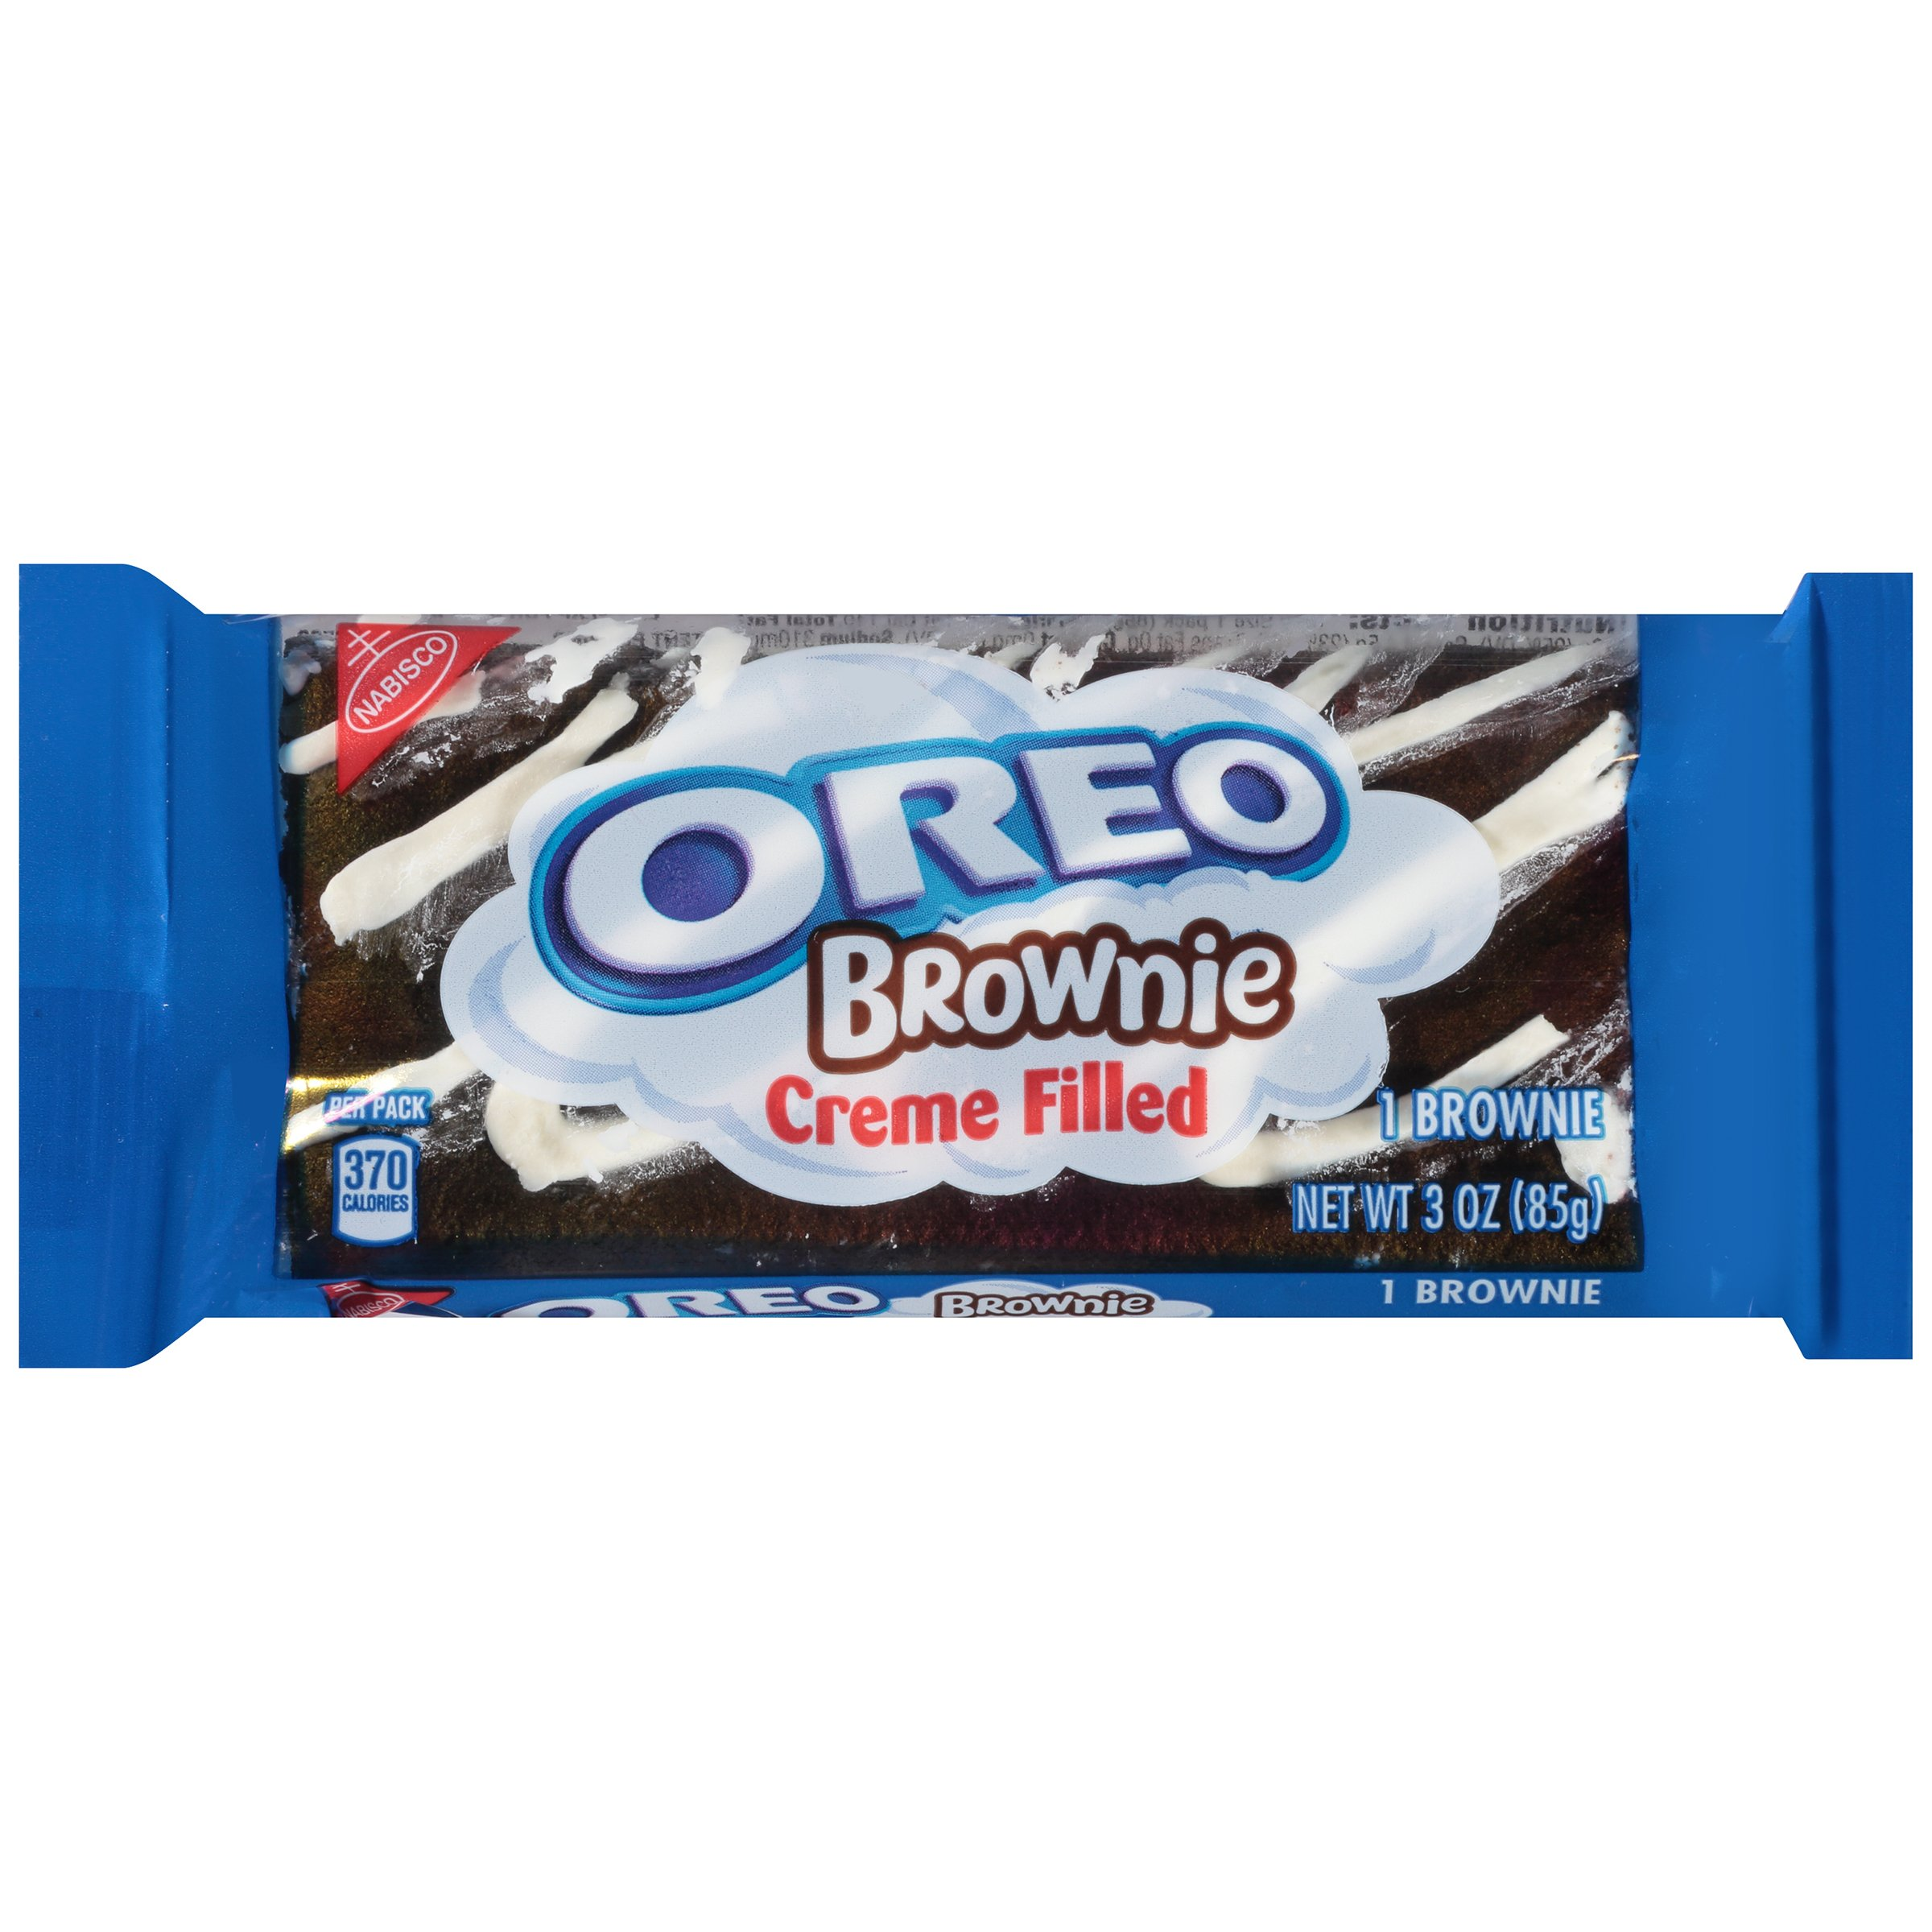 Oreo Brownie, Crème Filled, 3 Ounce Package, 12 Pack